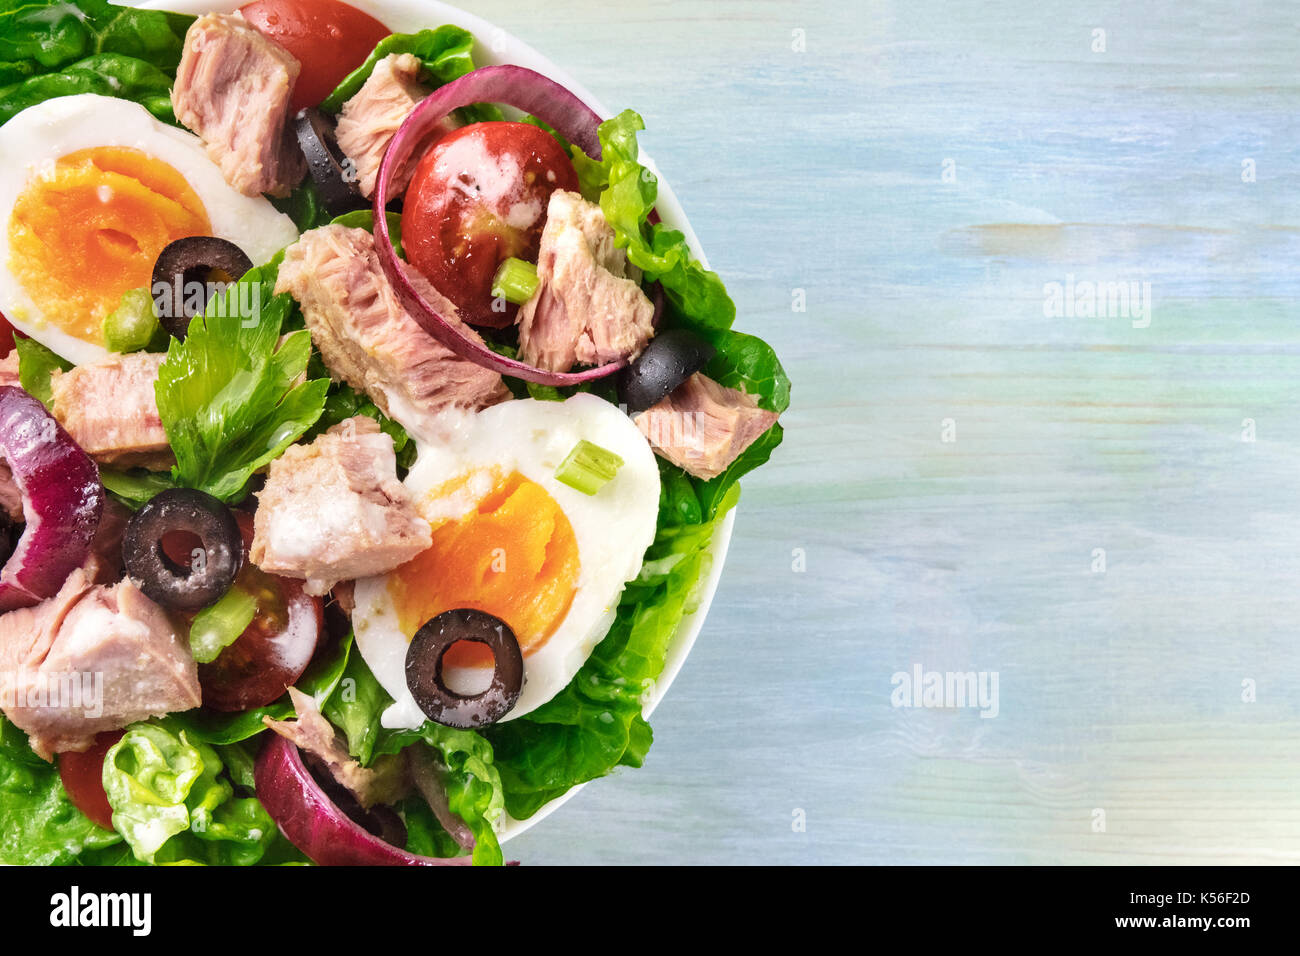 Closeup of tuna salad, top view, with copy space - Stock Image